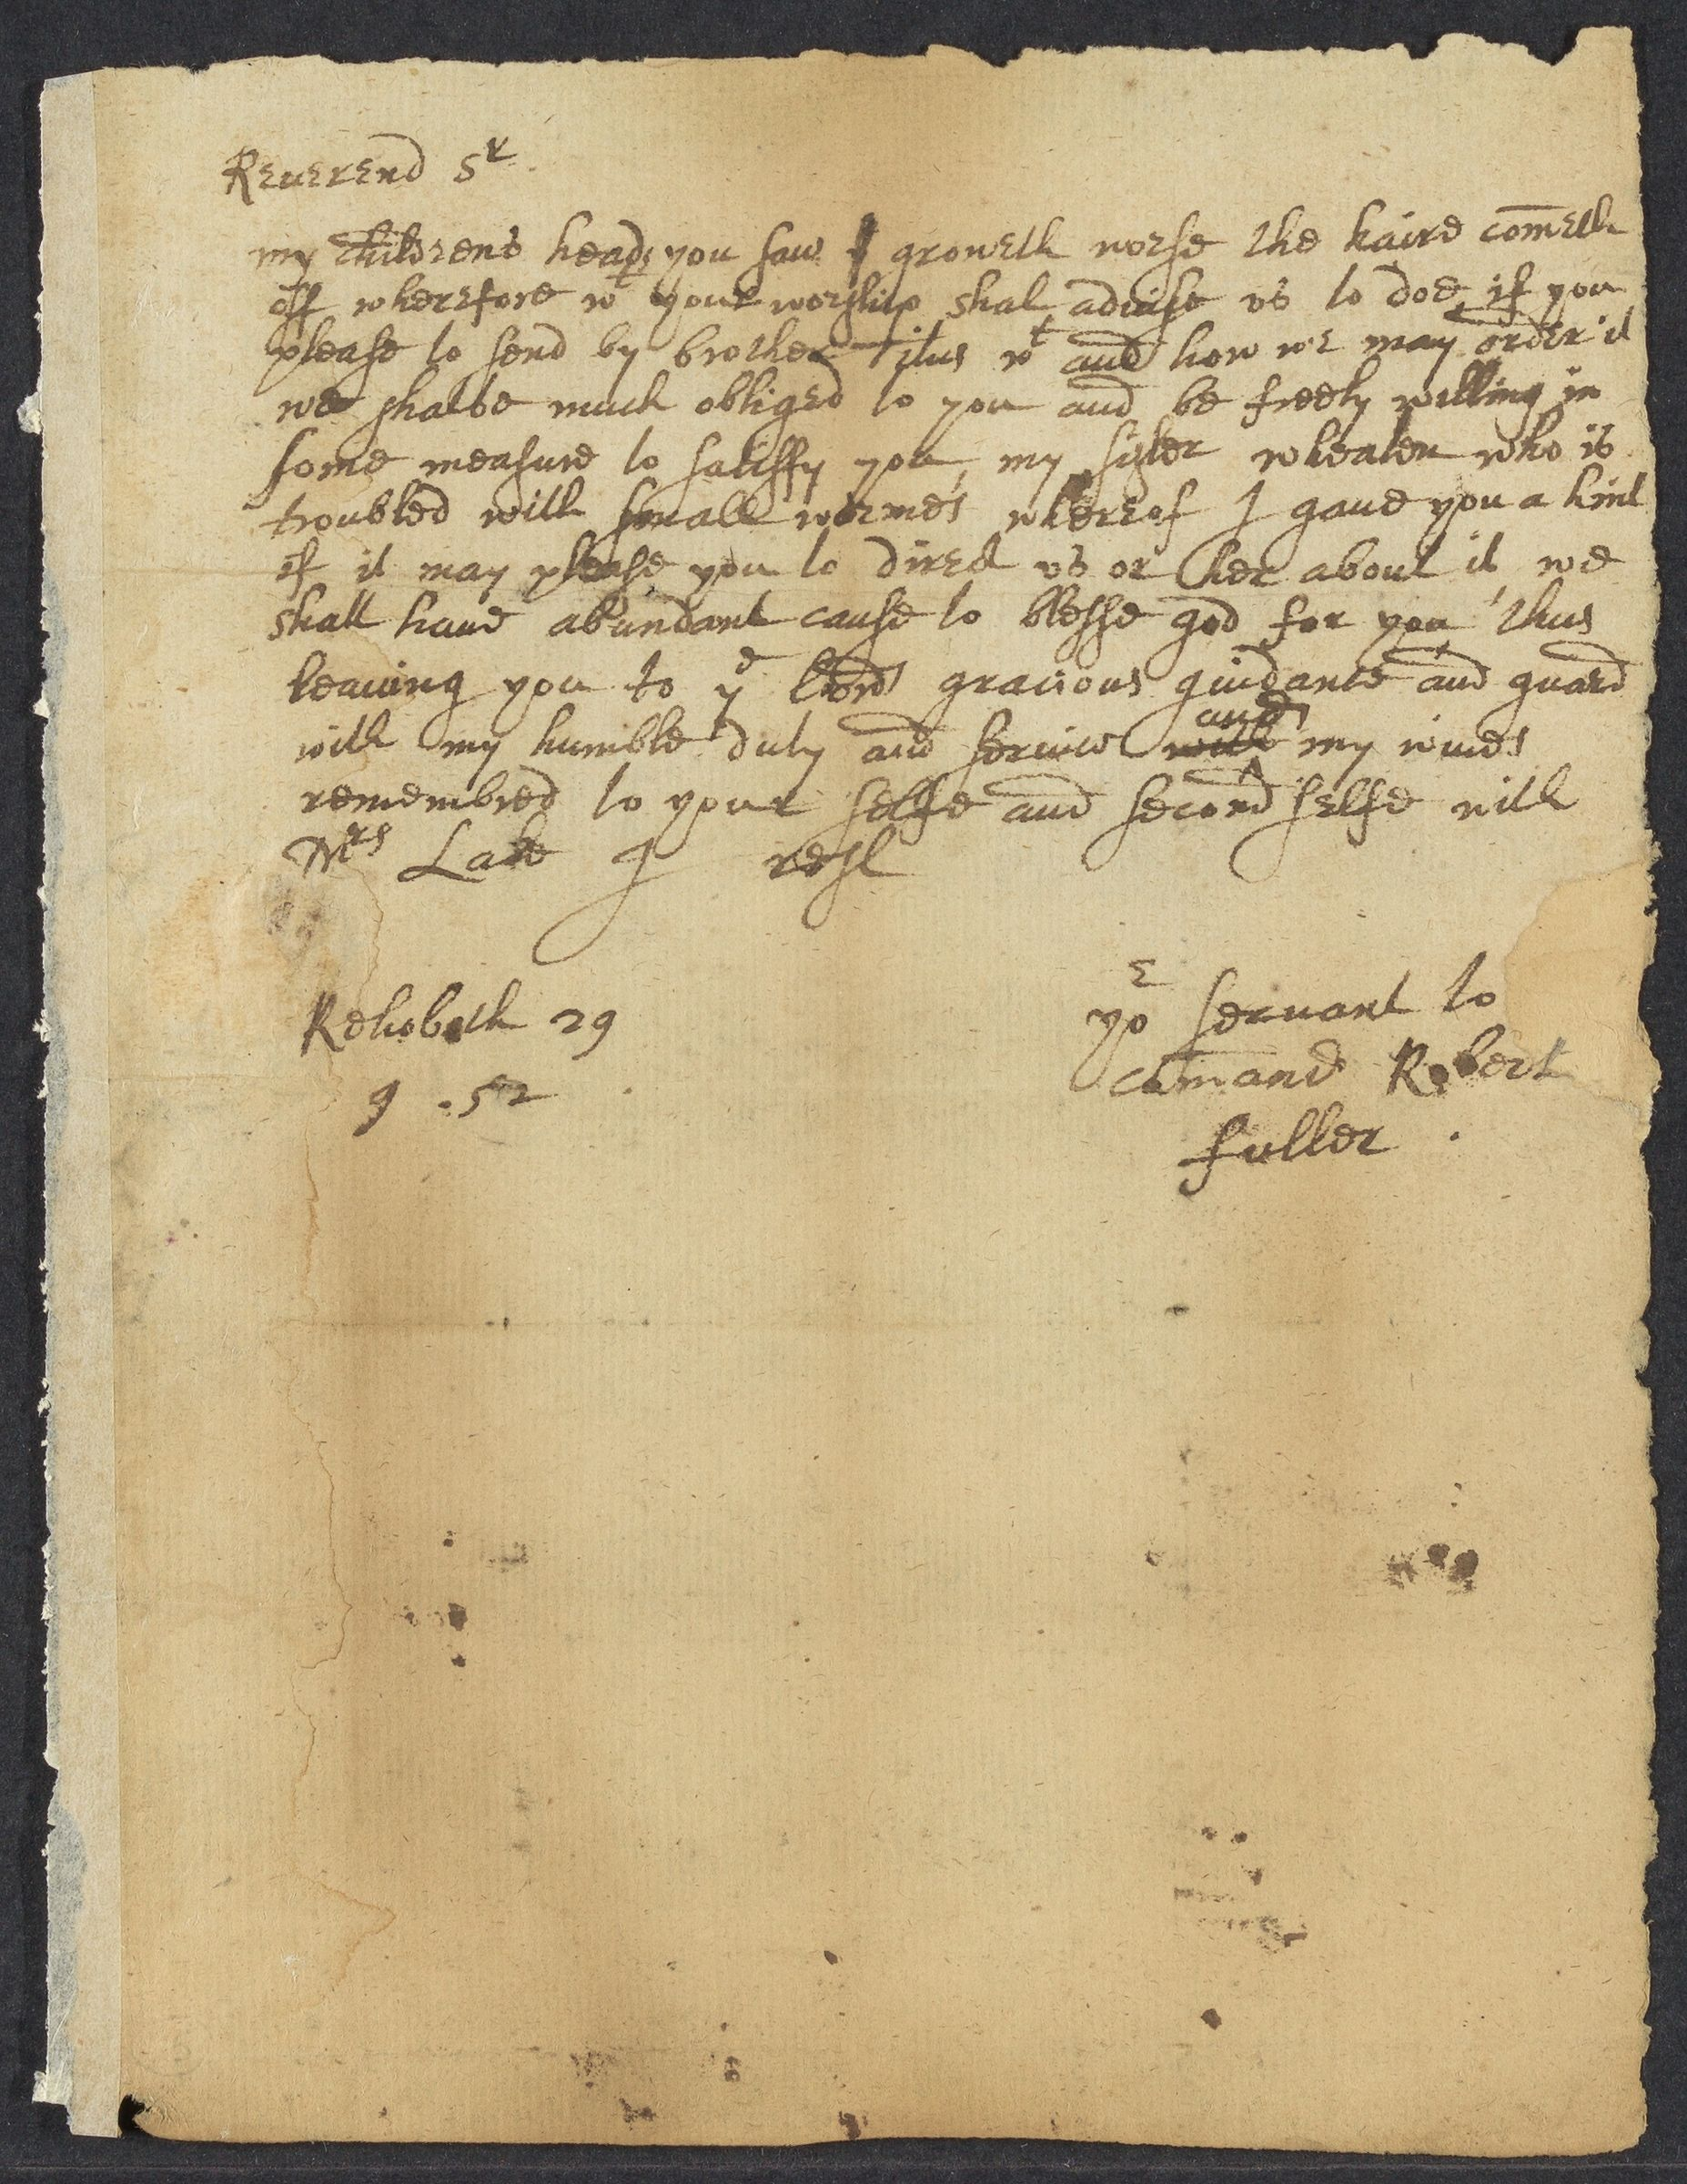 Fuller, Robert, autographed letter signed to John Winthrop; Rehoboth, Mass., 1 side (2 pages), 1652 September 29